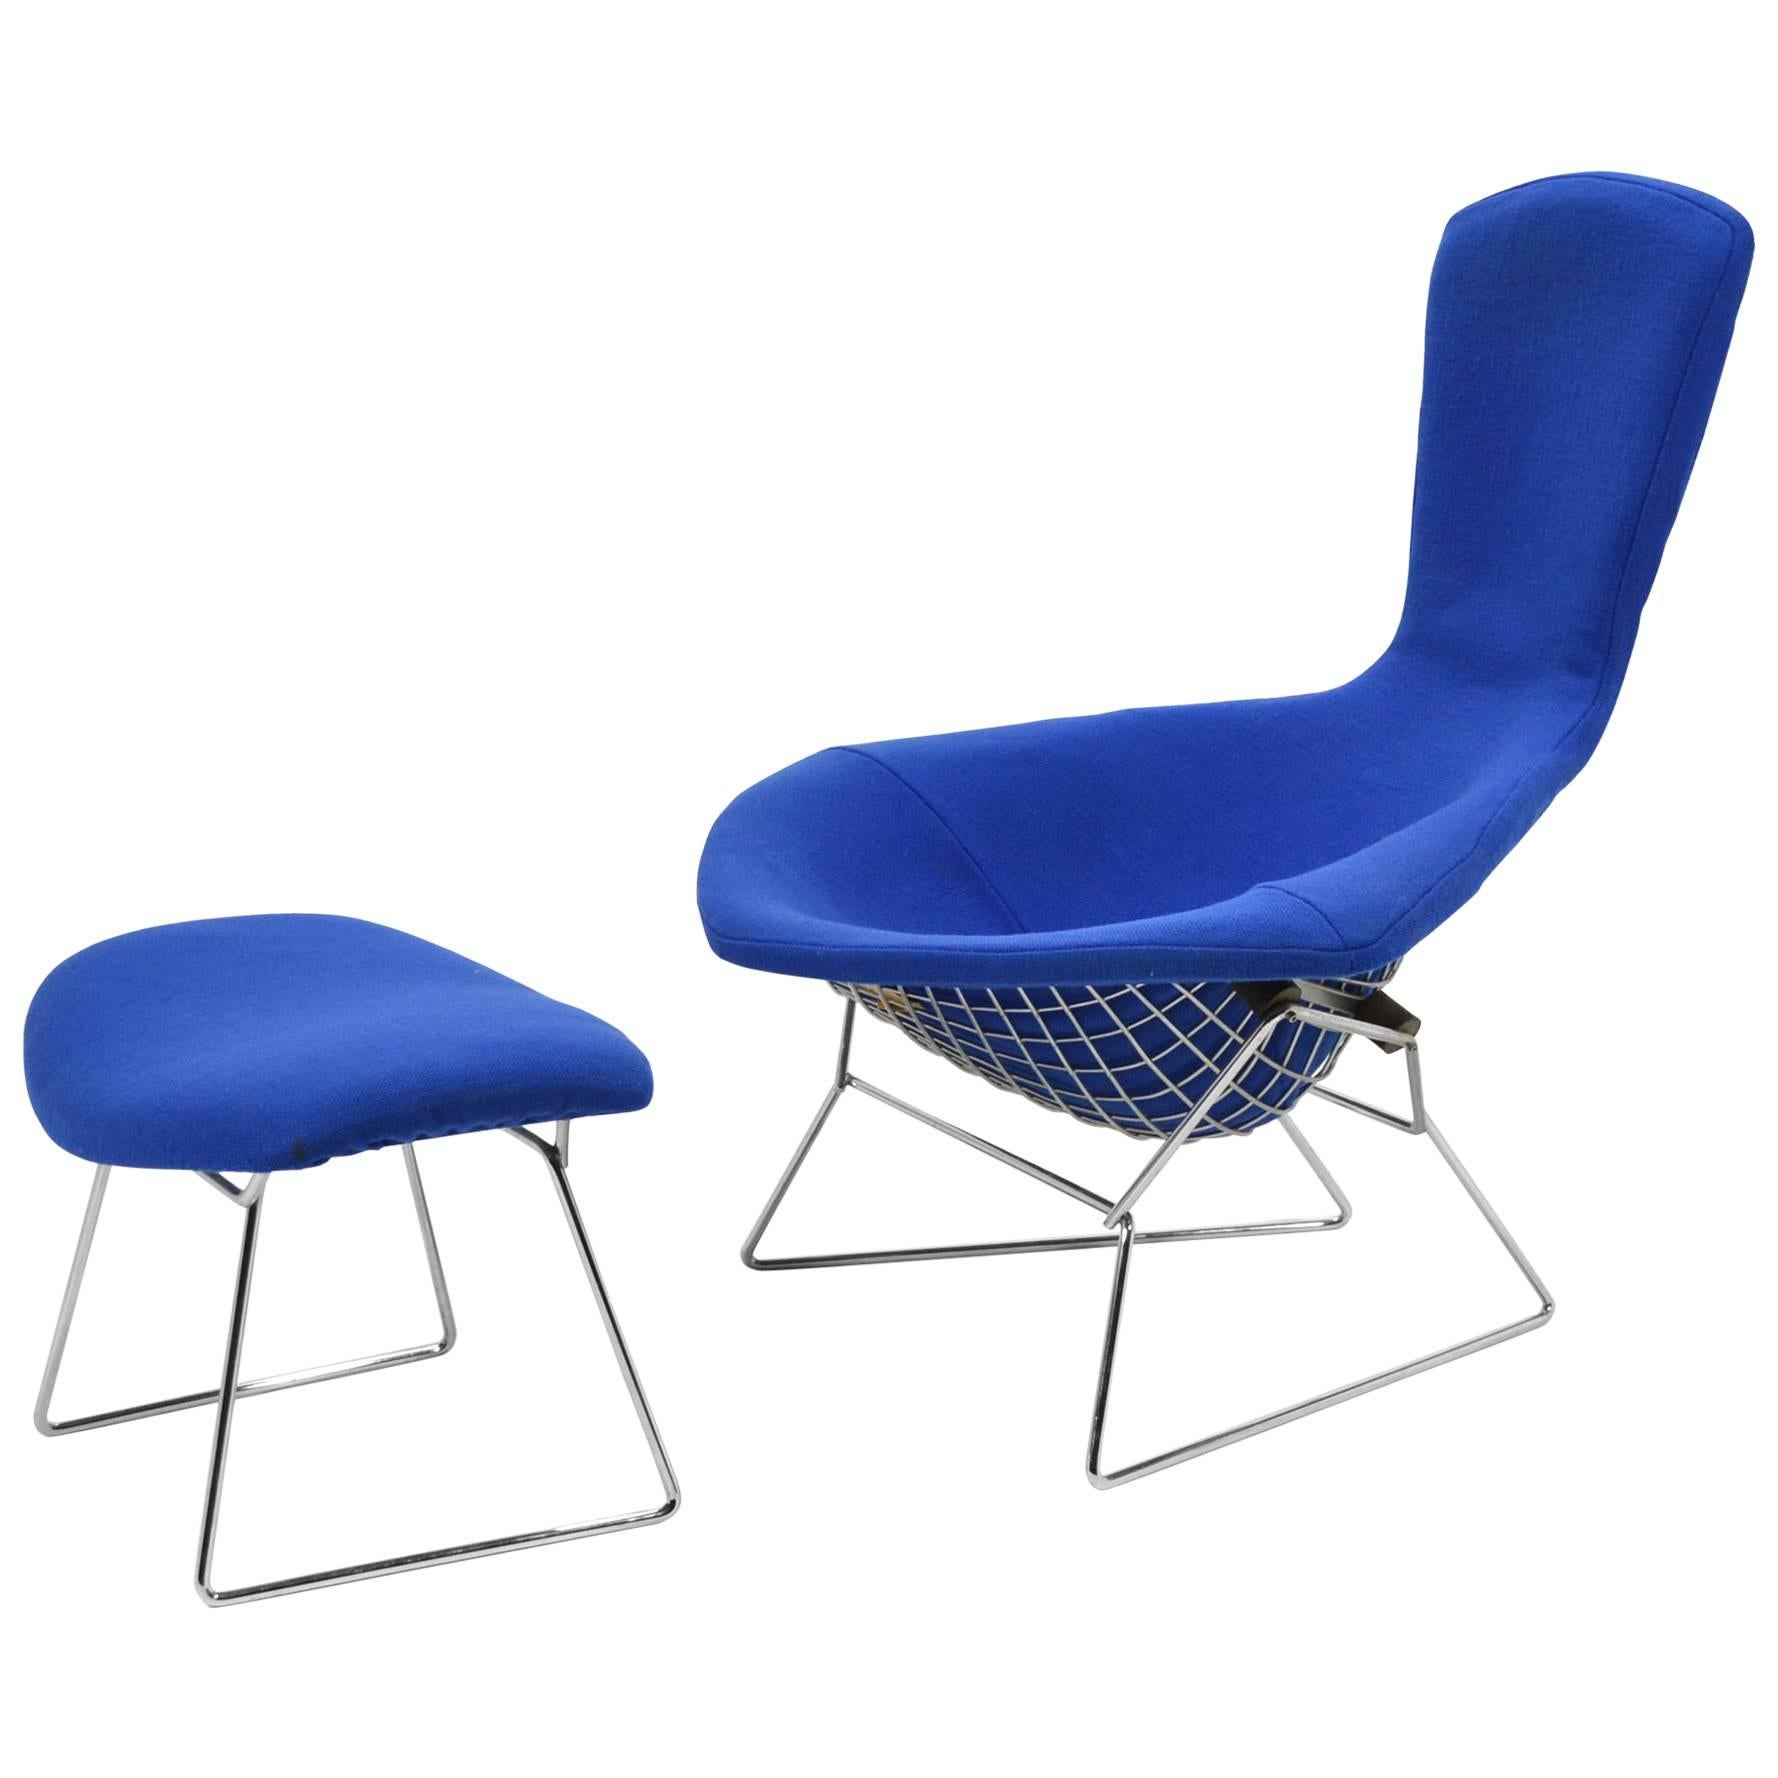 Harry Bertoia Bird Chair and Ottoman by Knoll  sc 1 st  1stDibs & Harry Bertoia Bird Chair and Ottoman for Knoll at 1stdibs